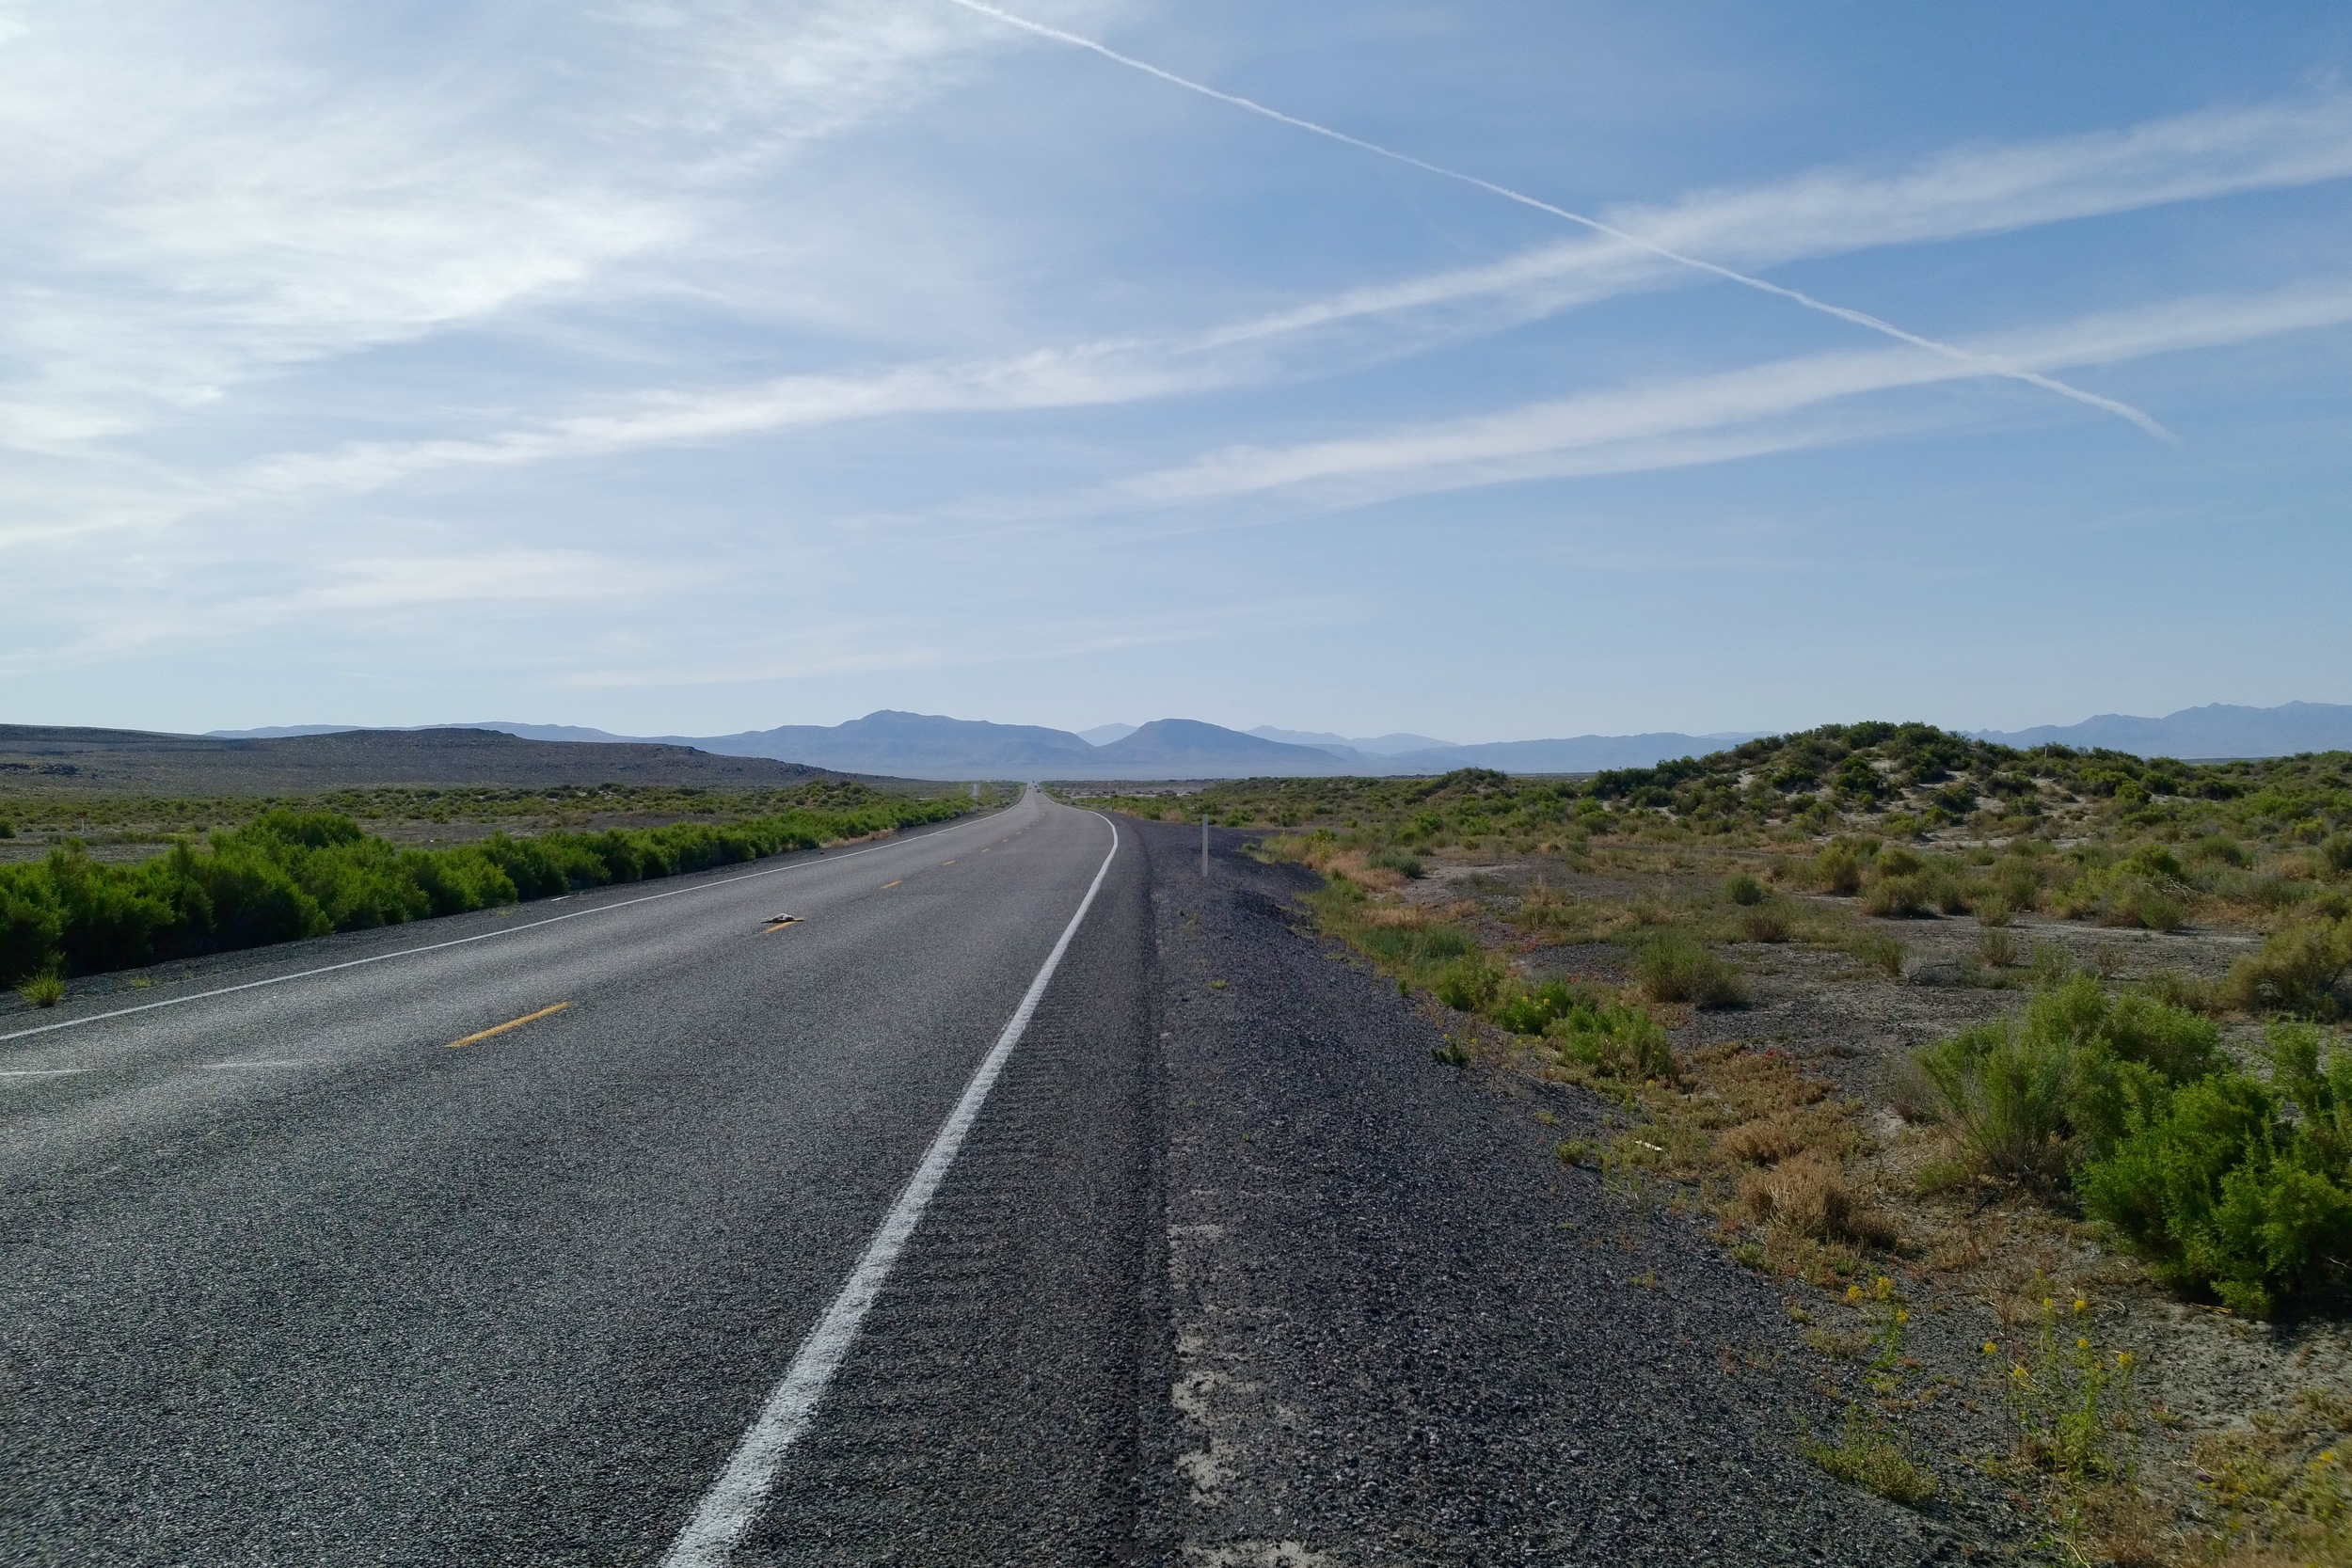 """Highway 50 out of Fallon is the famous """"Loneliest Highway in the World"""", which i don't think is true now - a few days later I was on 21 coming into Utah, and that was far lonelier - maybe one car passed ever hour..."""